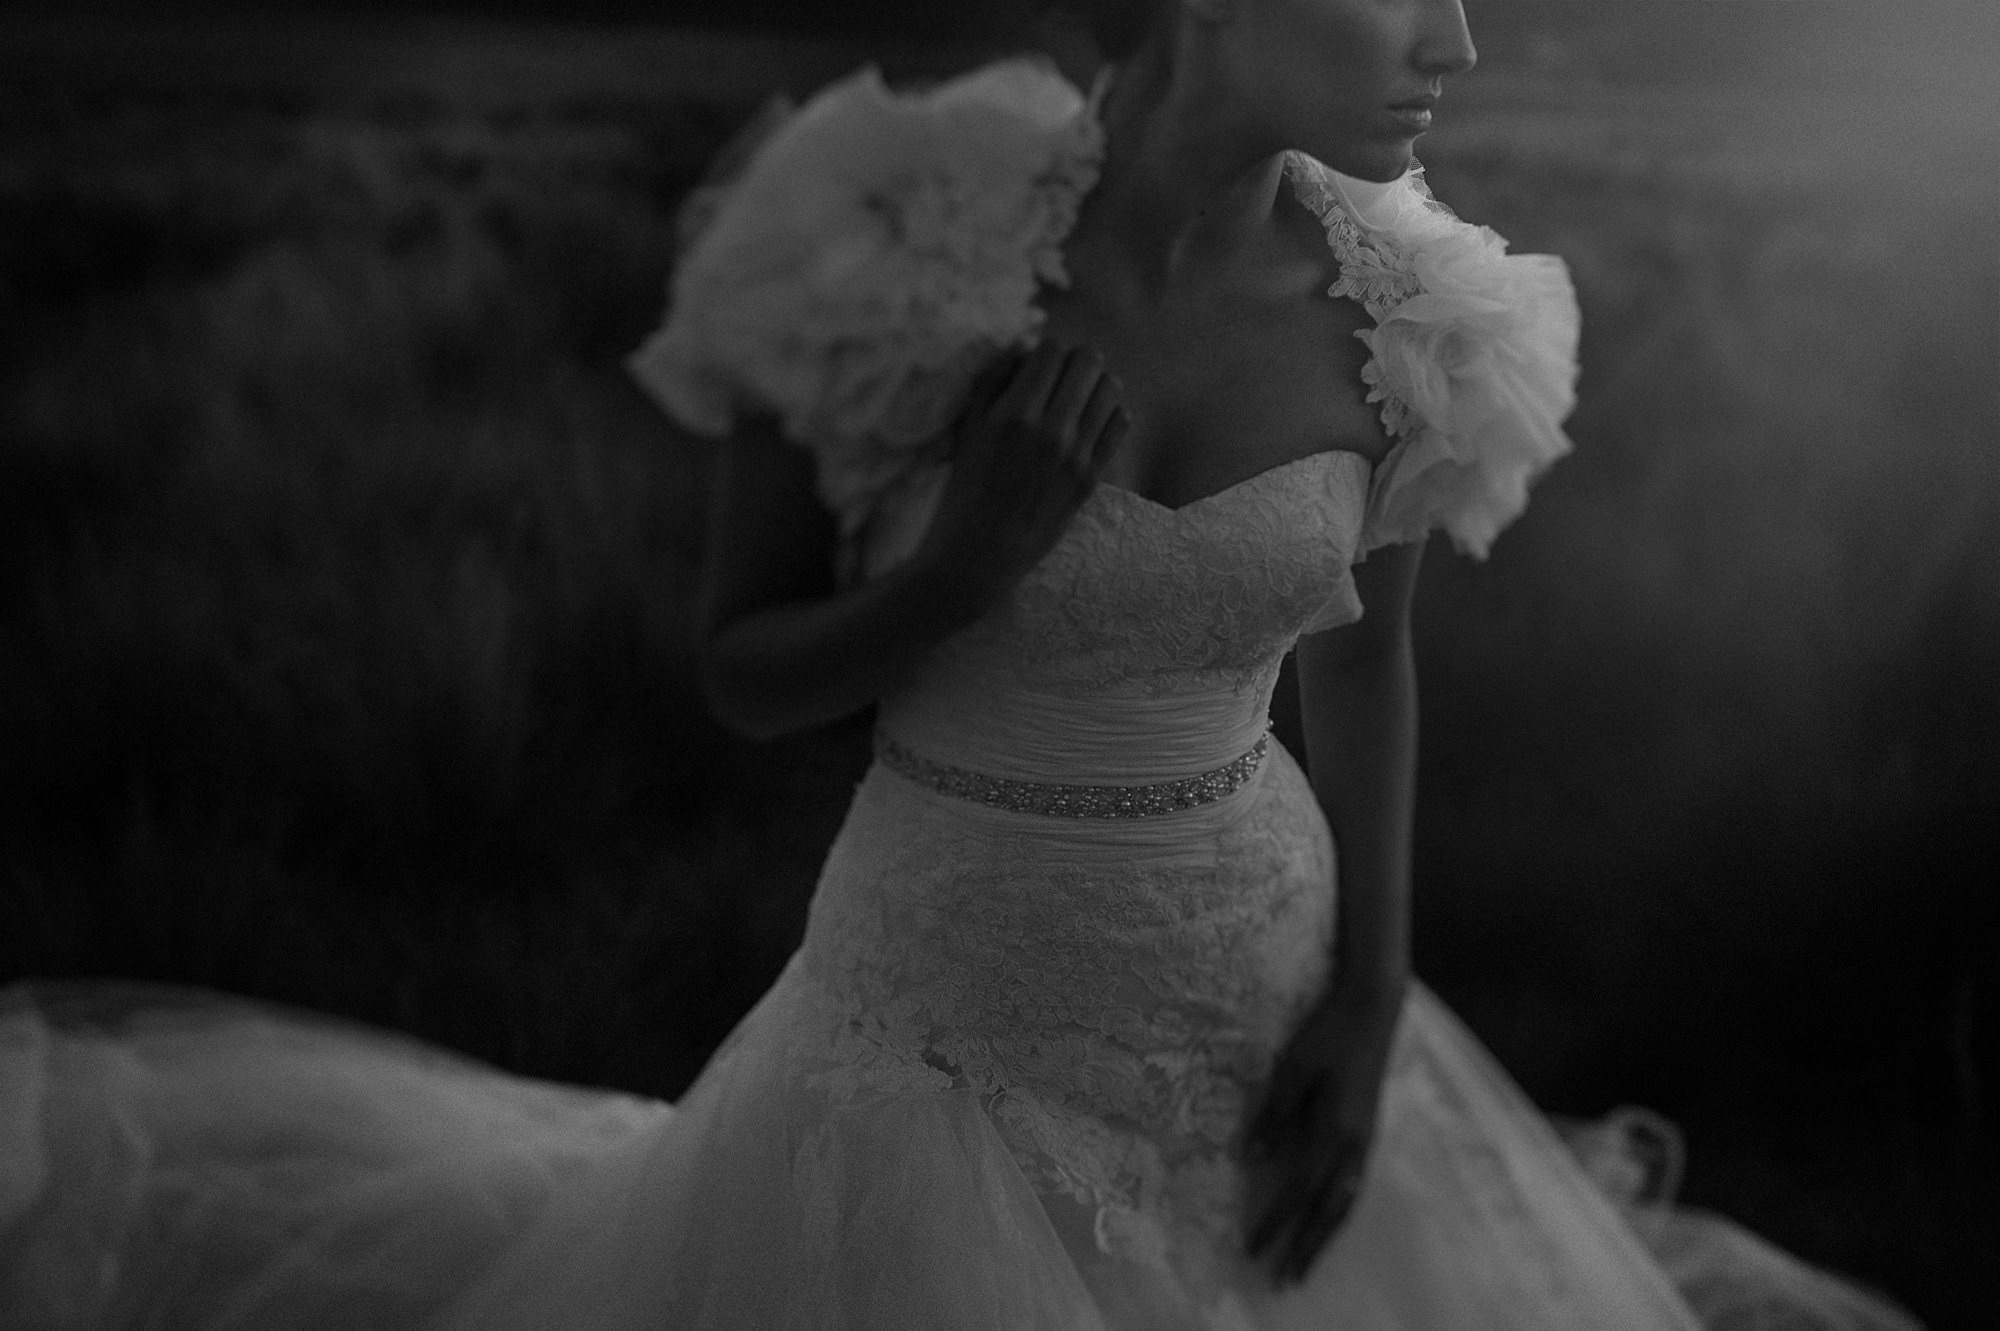 Ethereal portrait of bride with lace dress and ruffled bolero